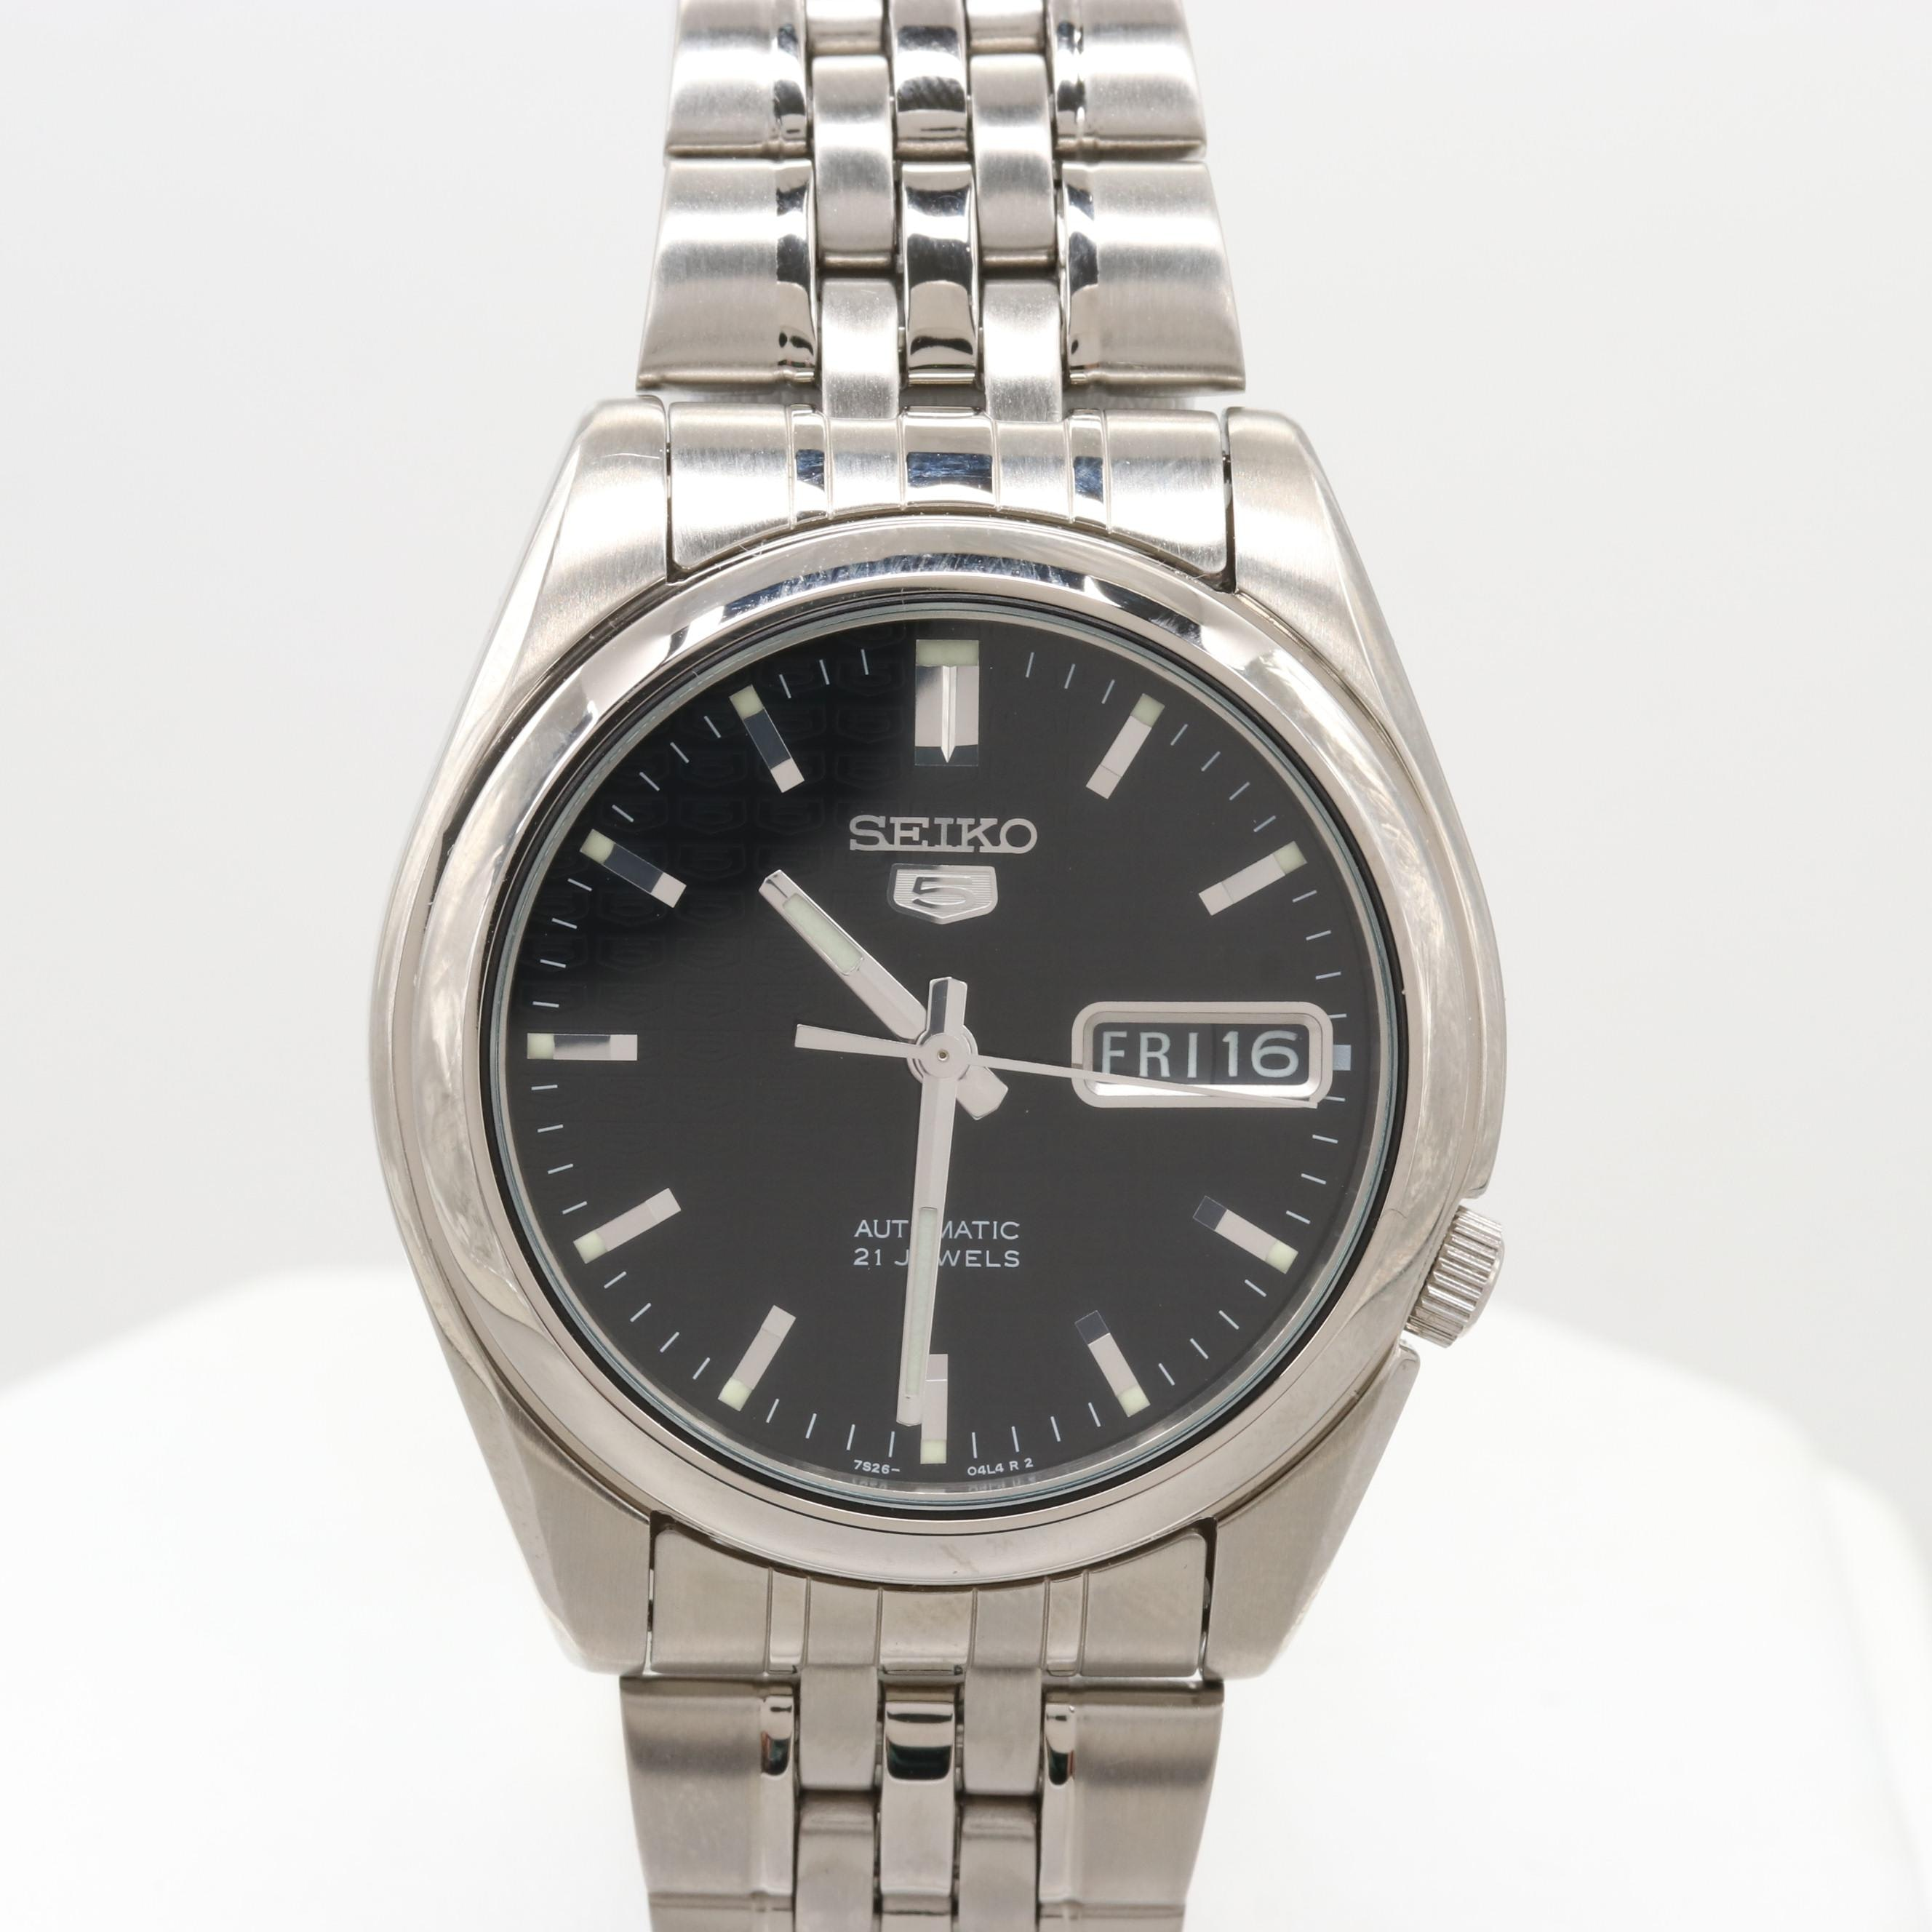 Seiko Stainless Steel Automatic Wristwatch With Day/Date Window